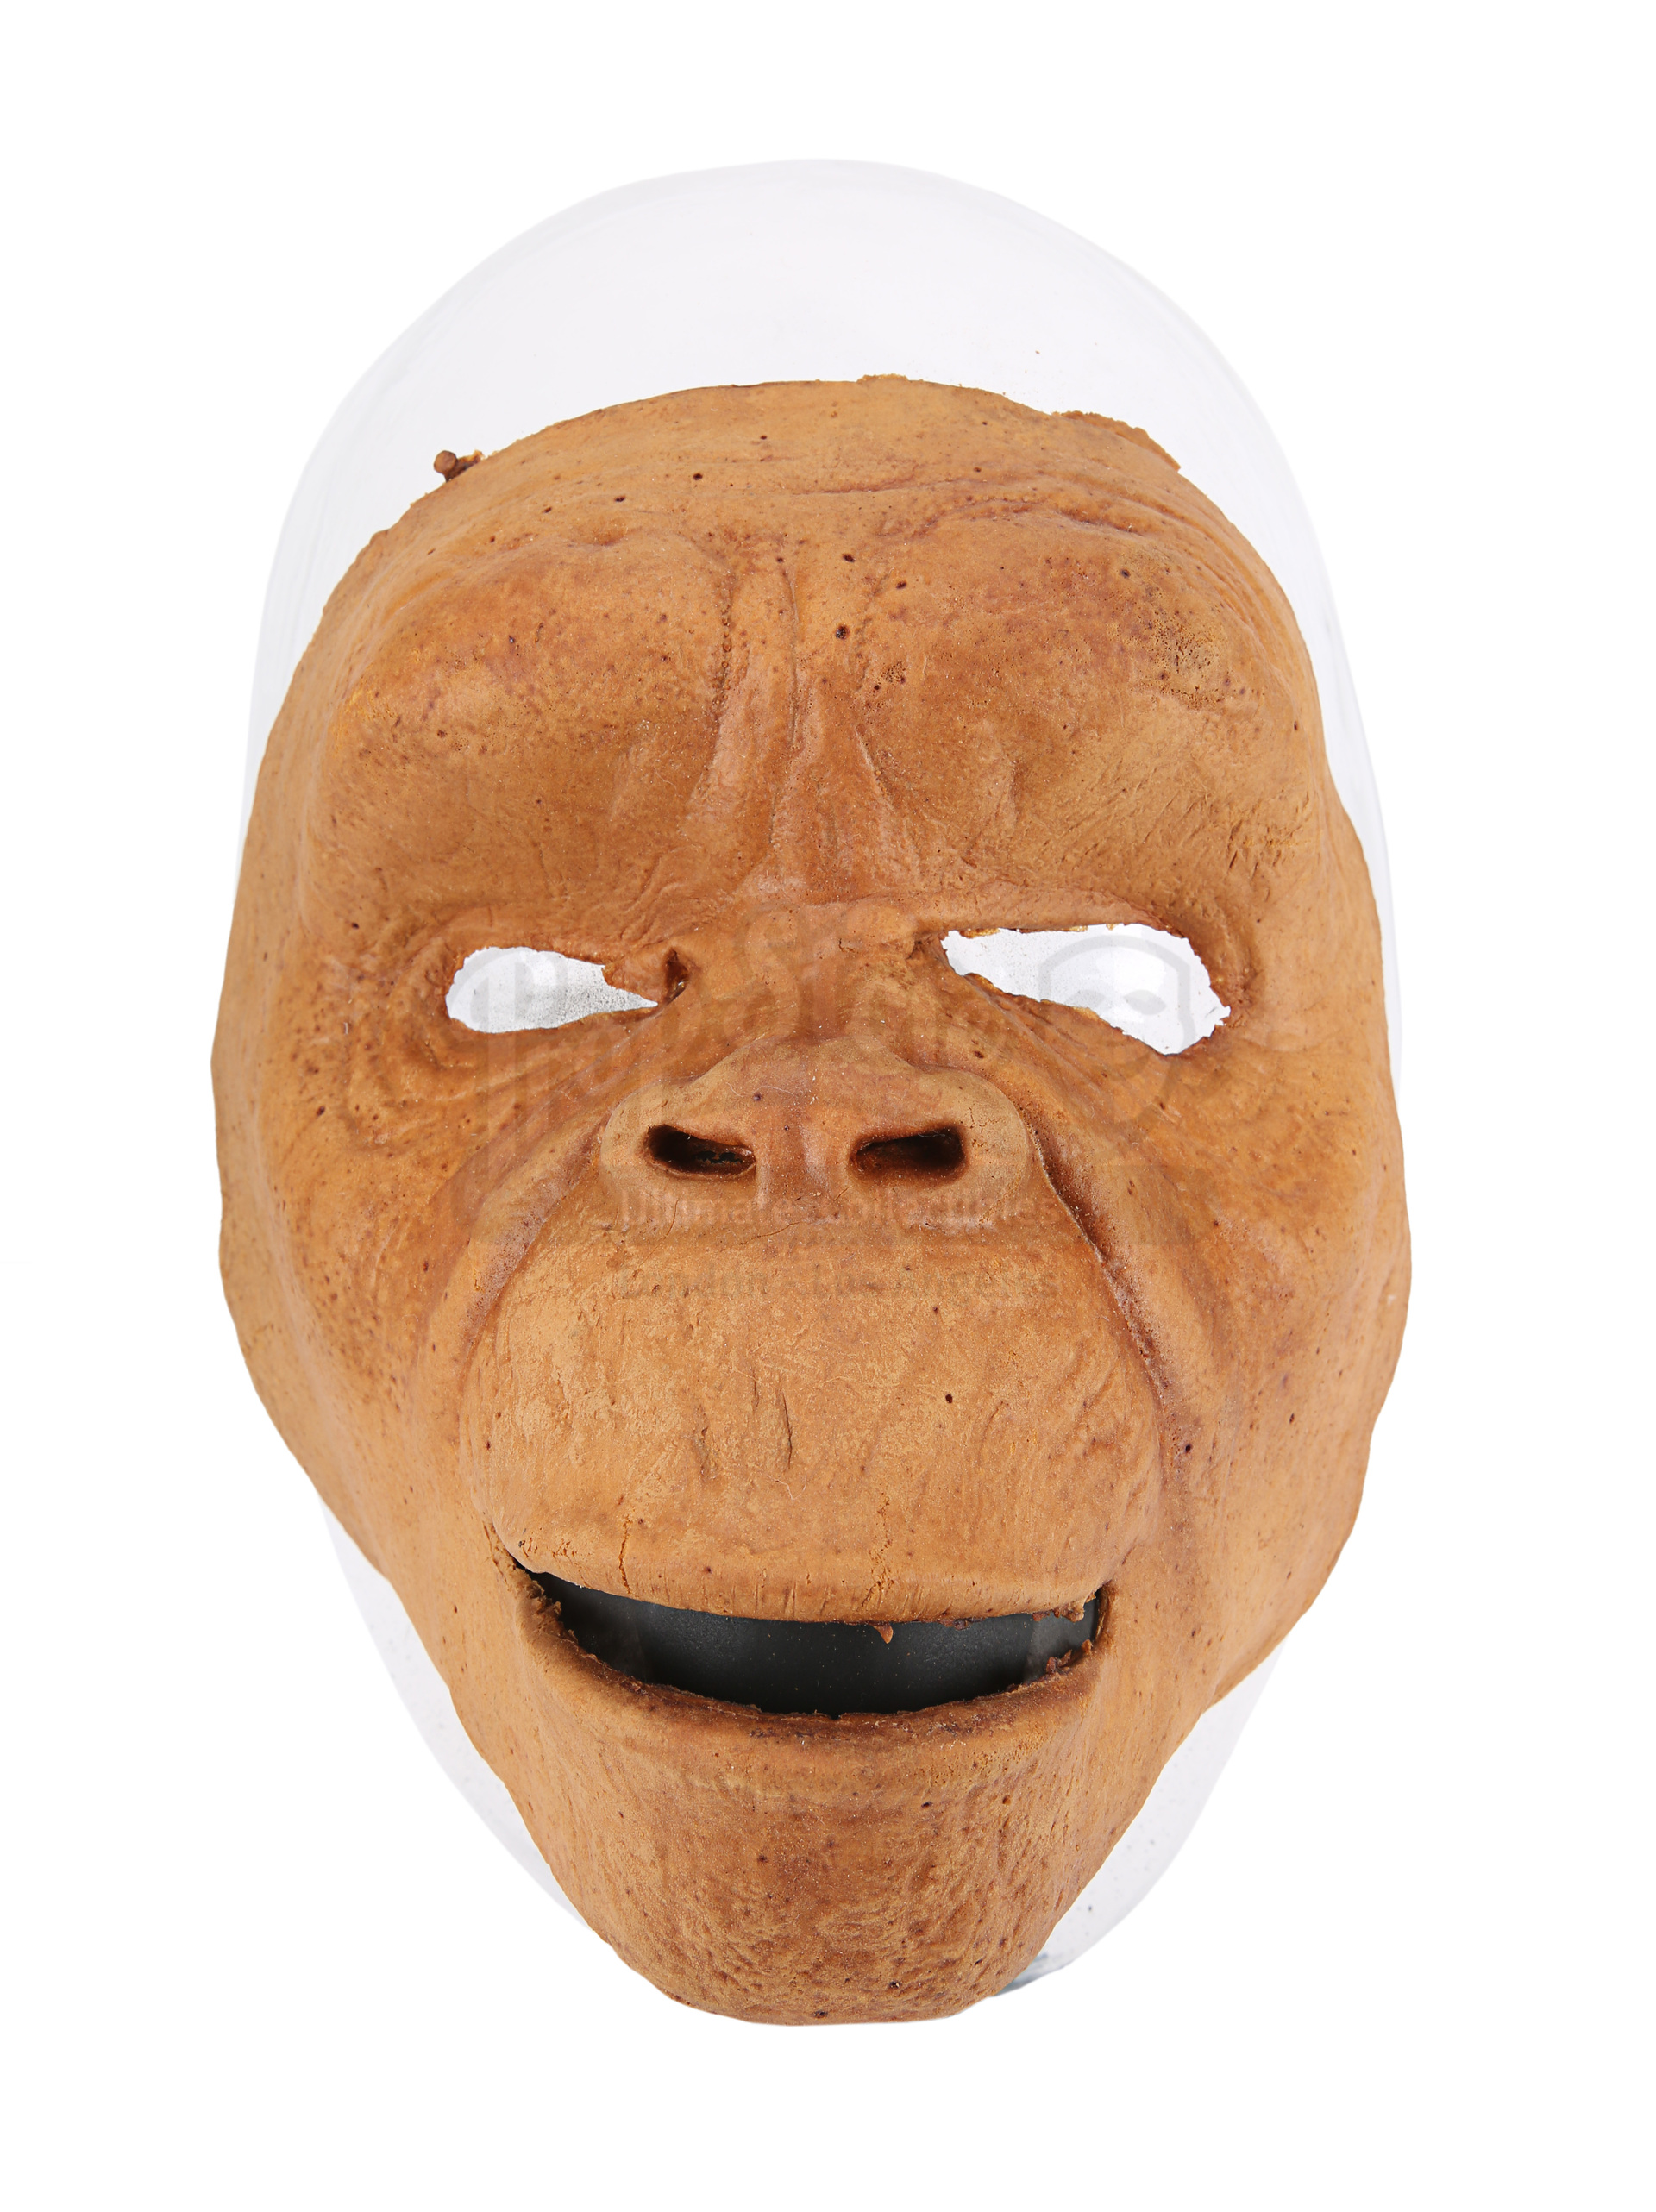 2001: A SPACE ODYSSEY (1968) - Dawn of Man Ape Mask - Image 6 of 12